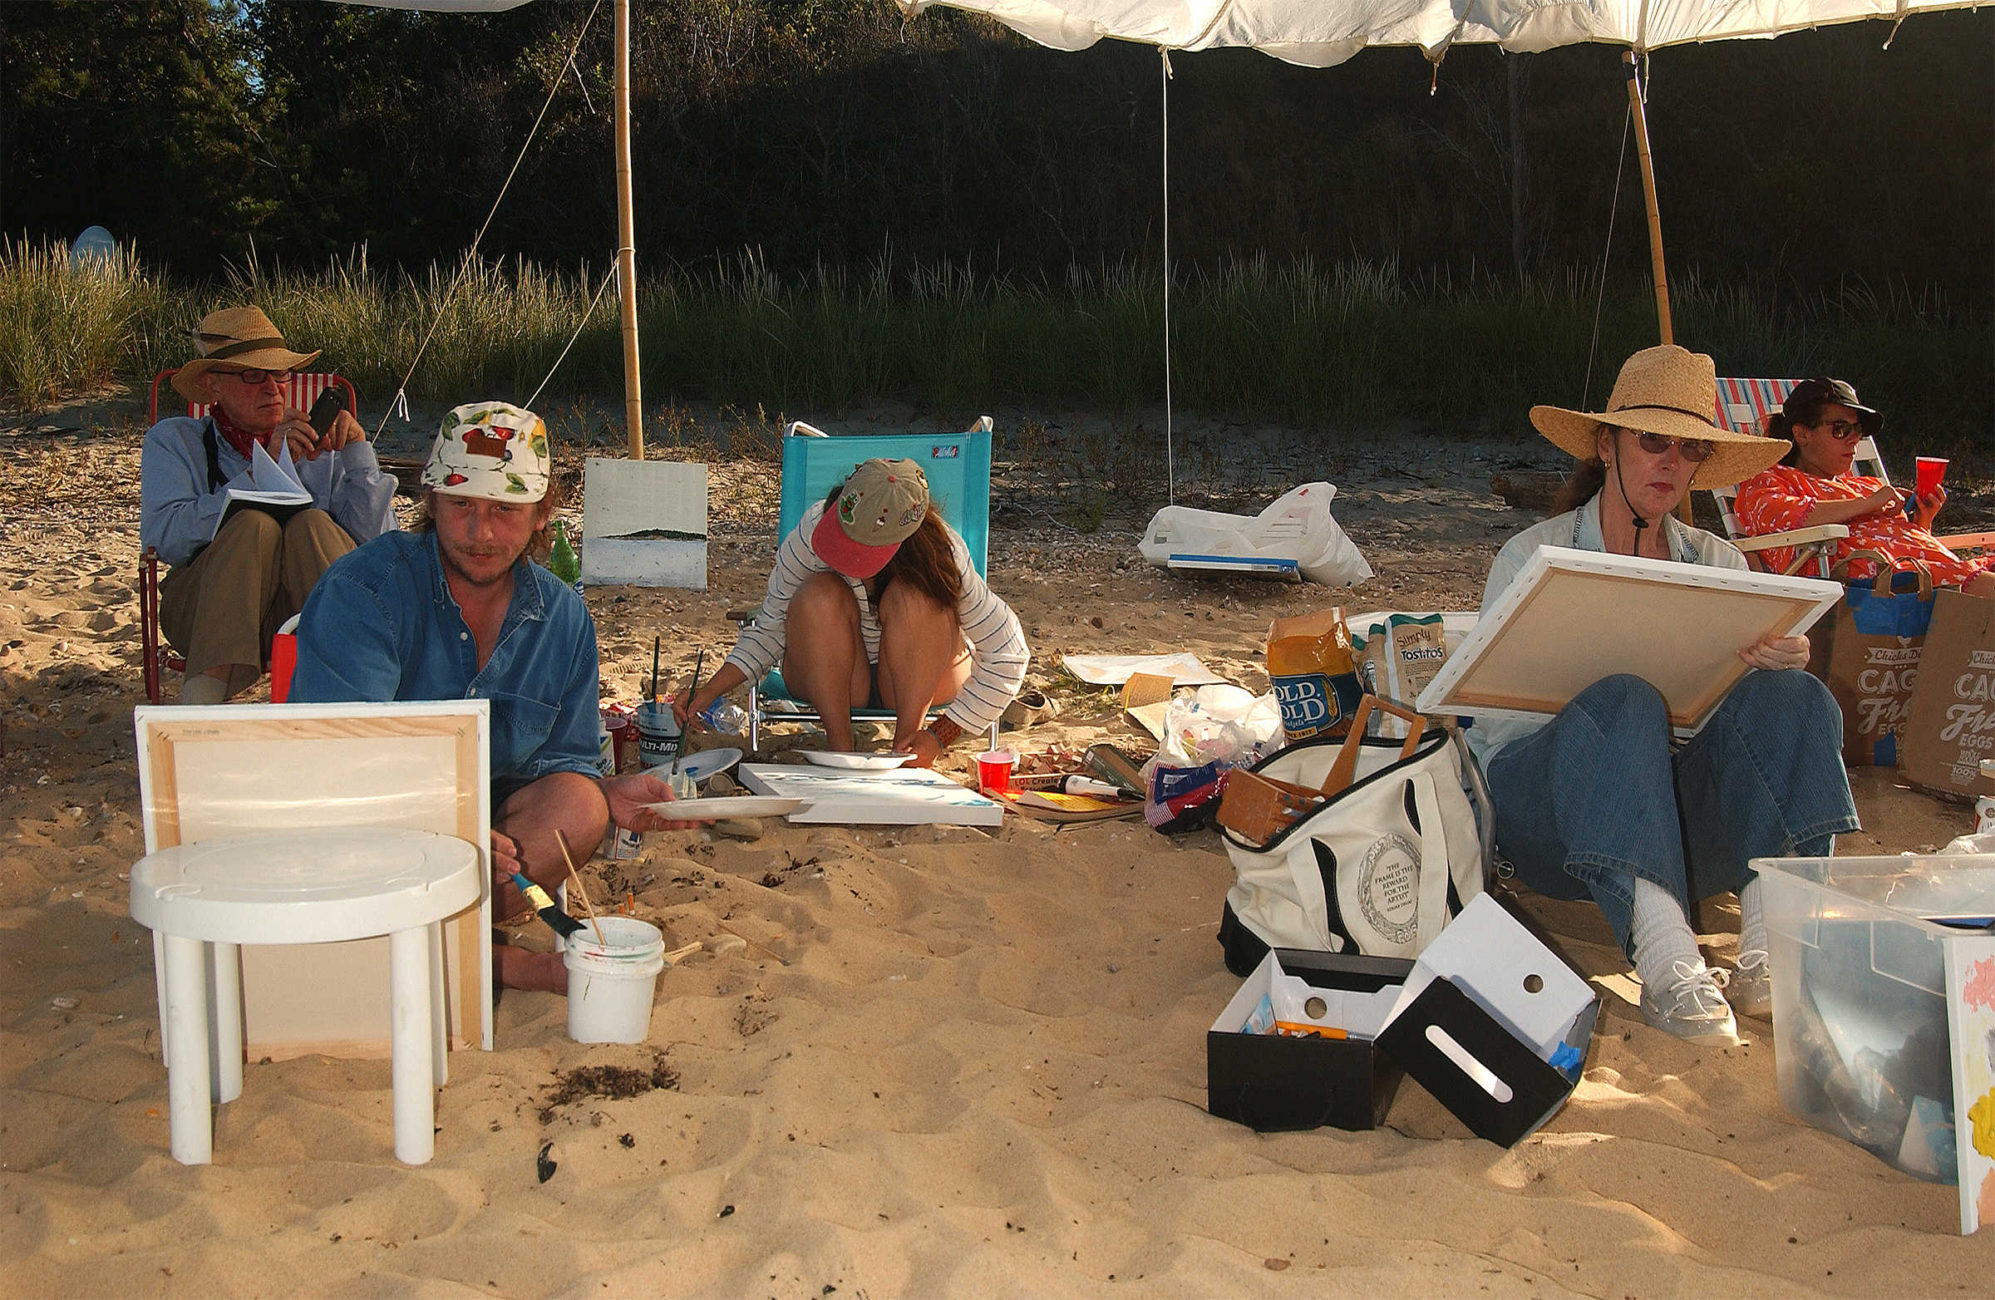 Artist Alex Wolfe (R) and artist Scott Reeder (L) participate with the Beach Painting Club at Sammy's Beach in East Hampton, New York.